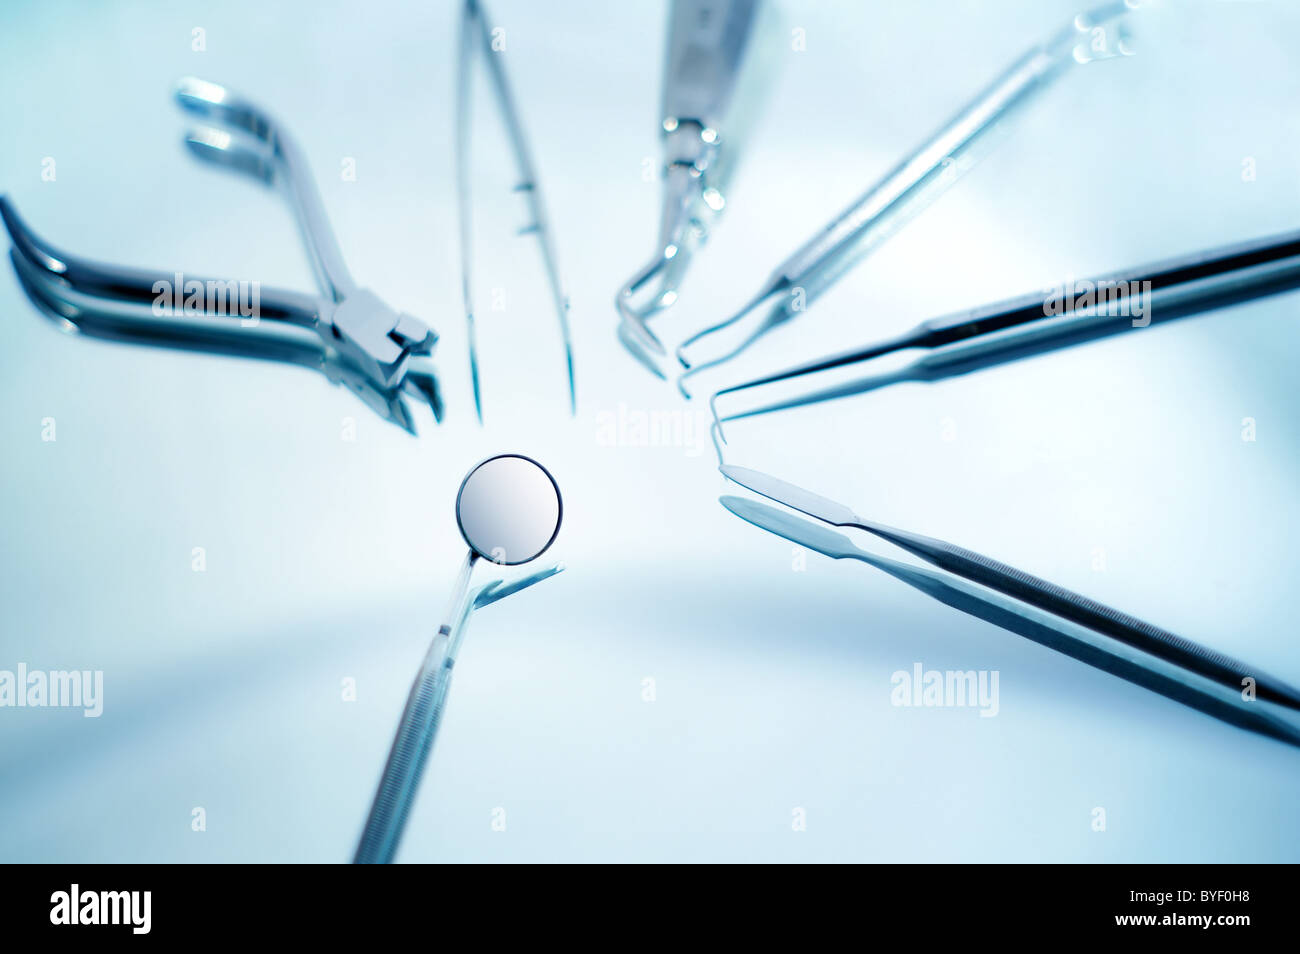 Dental instruments with shallow depth of field - Stock Image